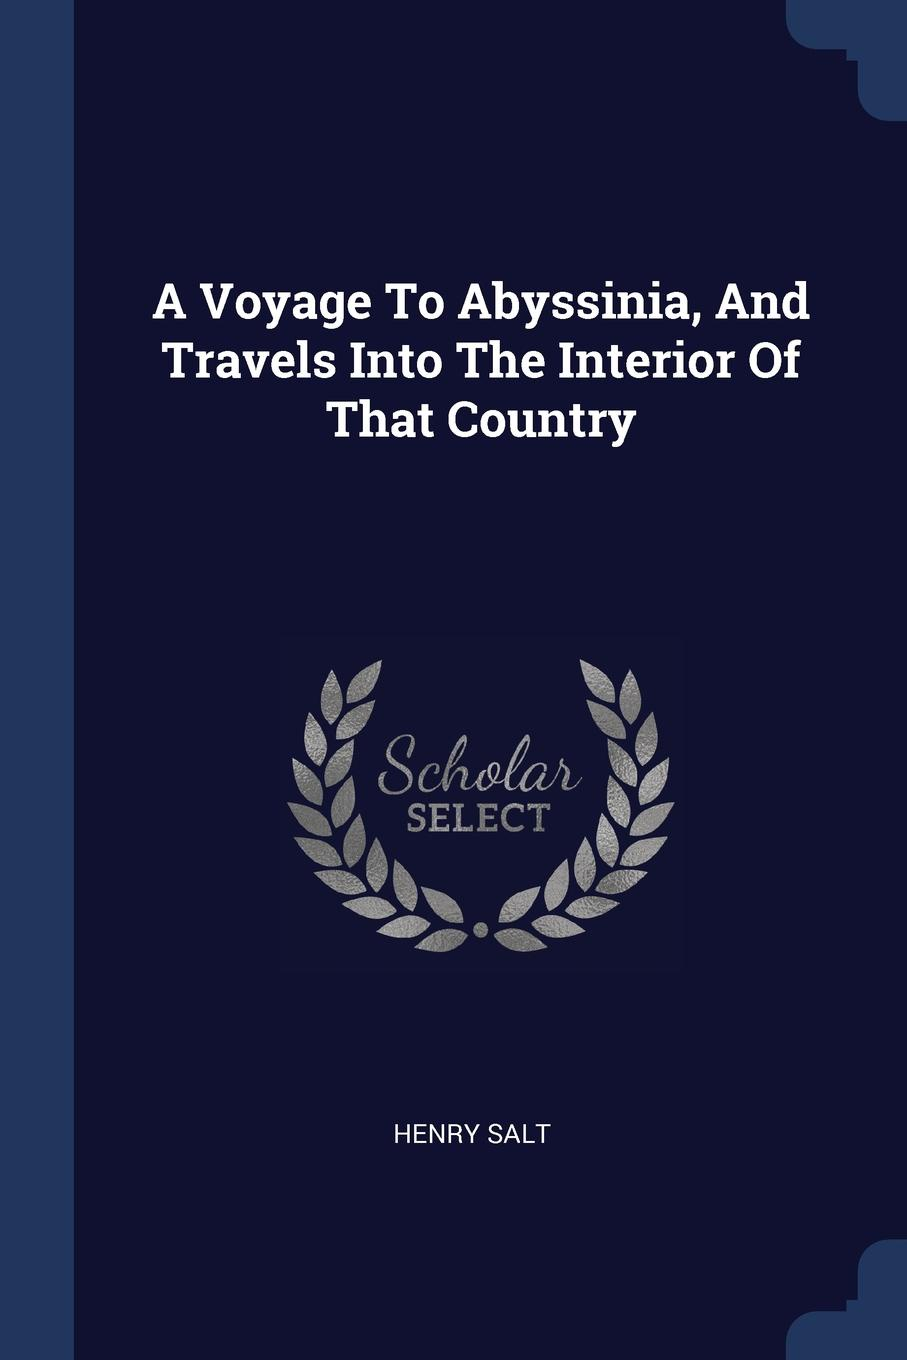 лучшая цена Henry Salt A Voyage To Abyssinia, And Travels Into The Interior Of That Country